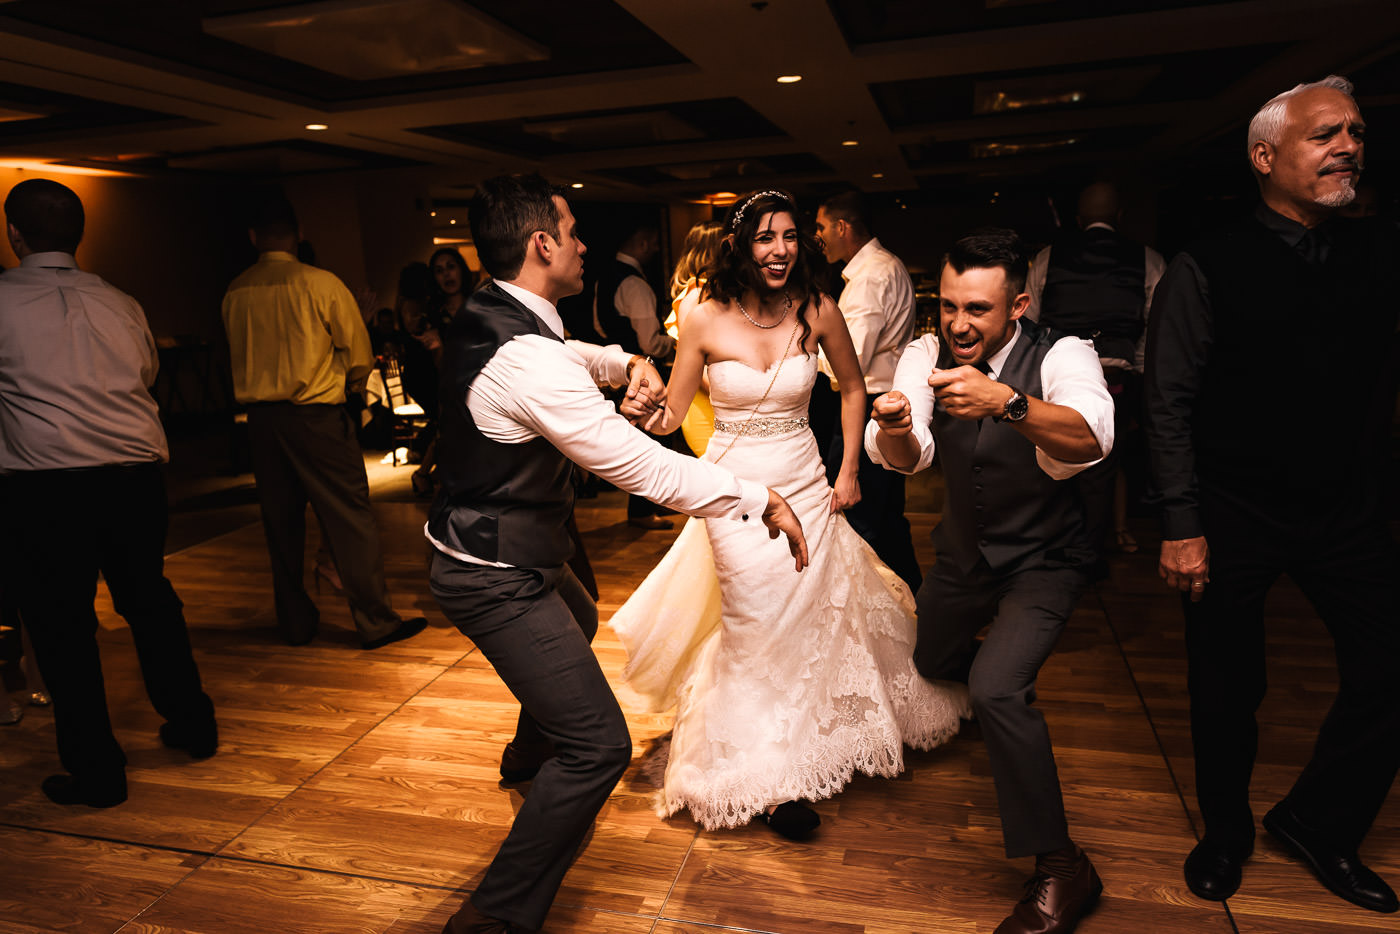 Couple dances with their guests at the reception.